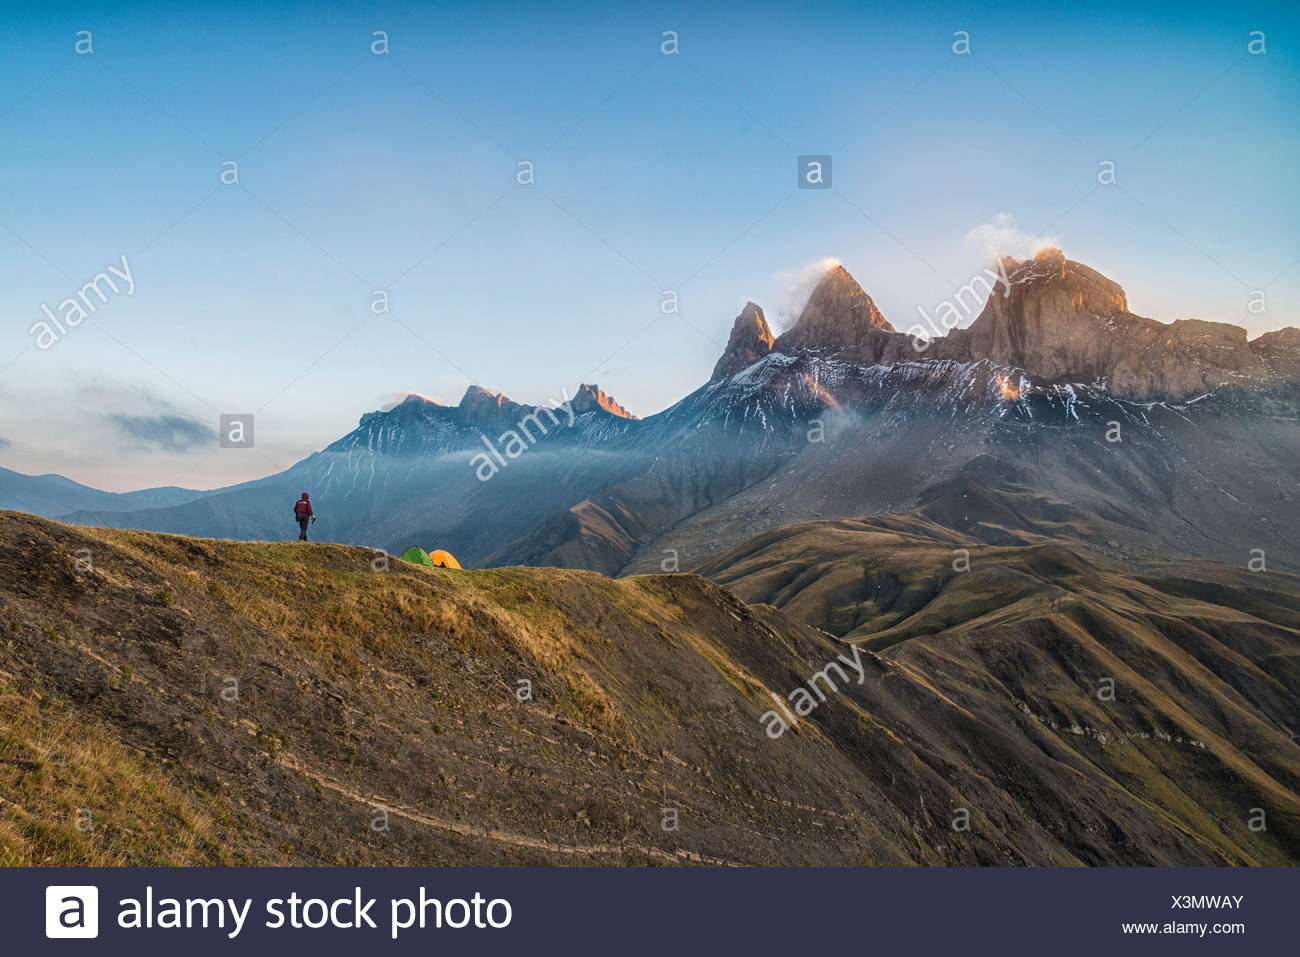 Hiker in front of the Aiguille d'Arves at sunrise, Ecrins, Savoie, France - Stock Image